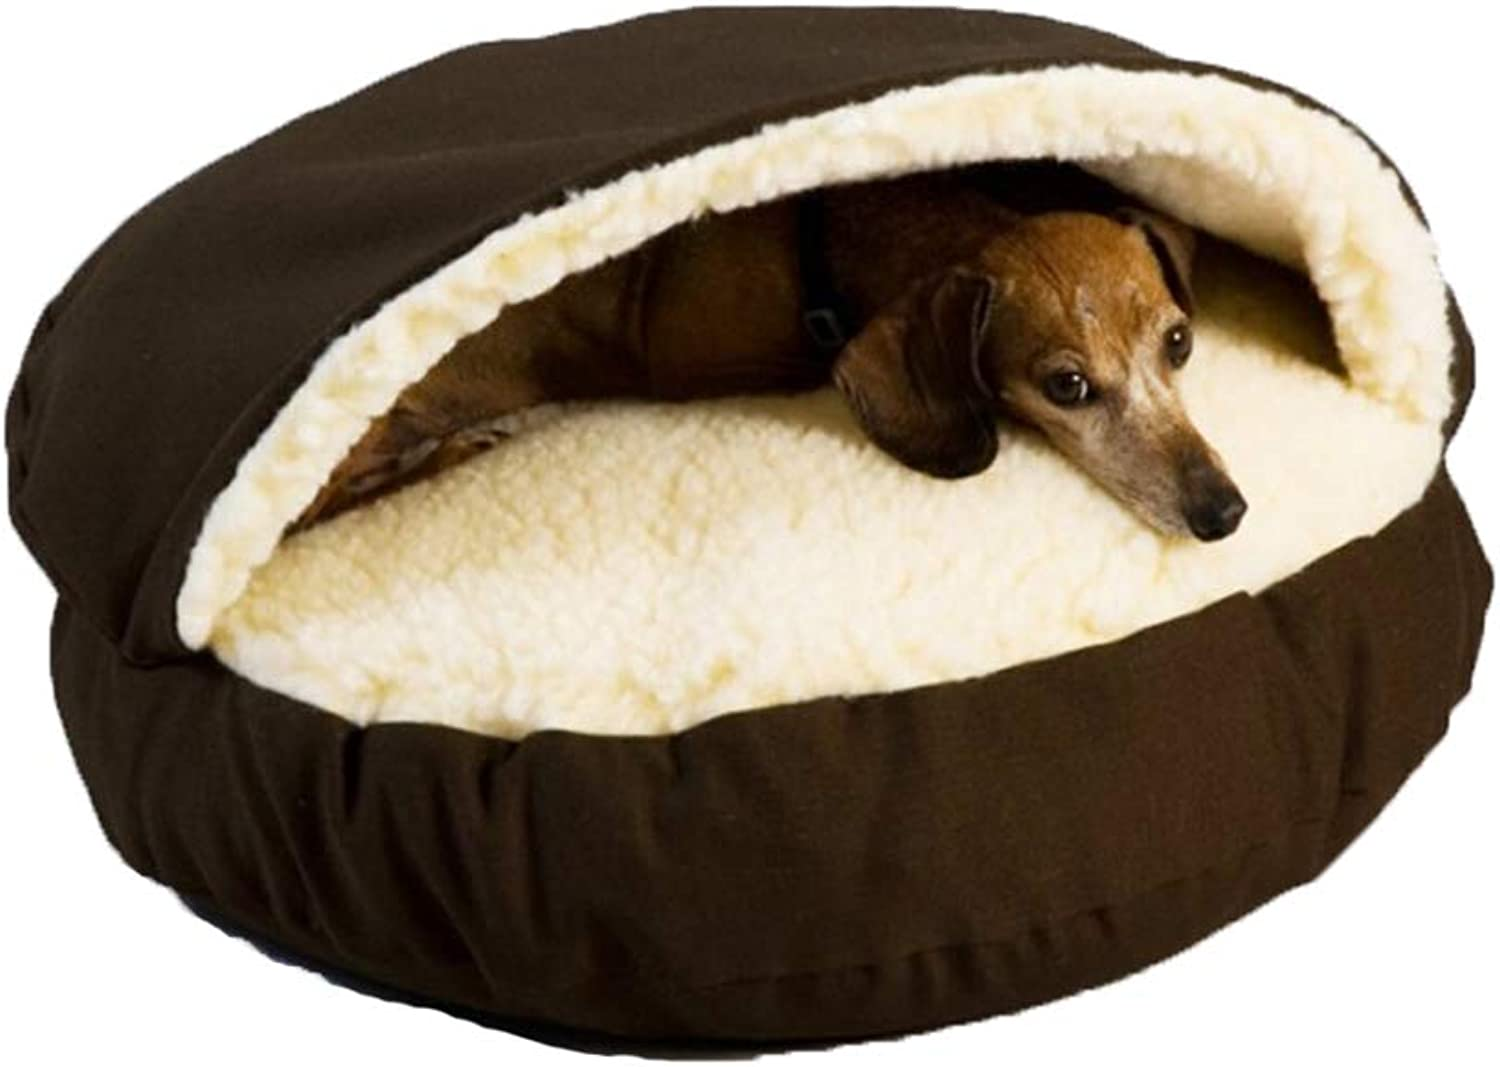 Admin Removable Pet Nest  Waterproof Nonslip Pet Mat  Comfortable Soft Pet Nest  S No. 64X10CM, L No. 89X10CM, XL No. 114X10CM (color   BROWN, Size   Xl)